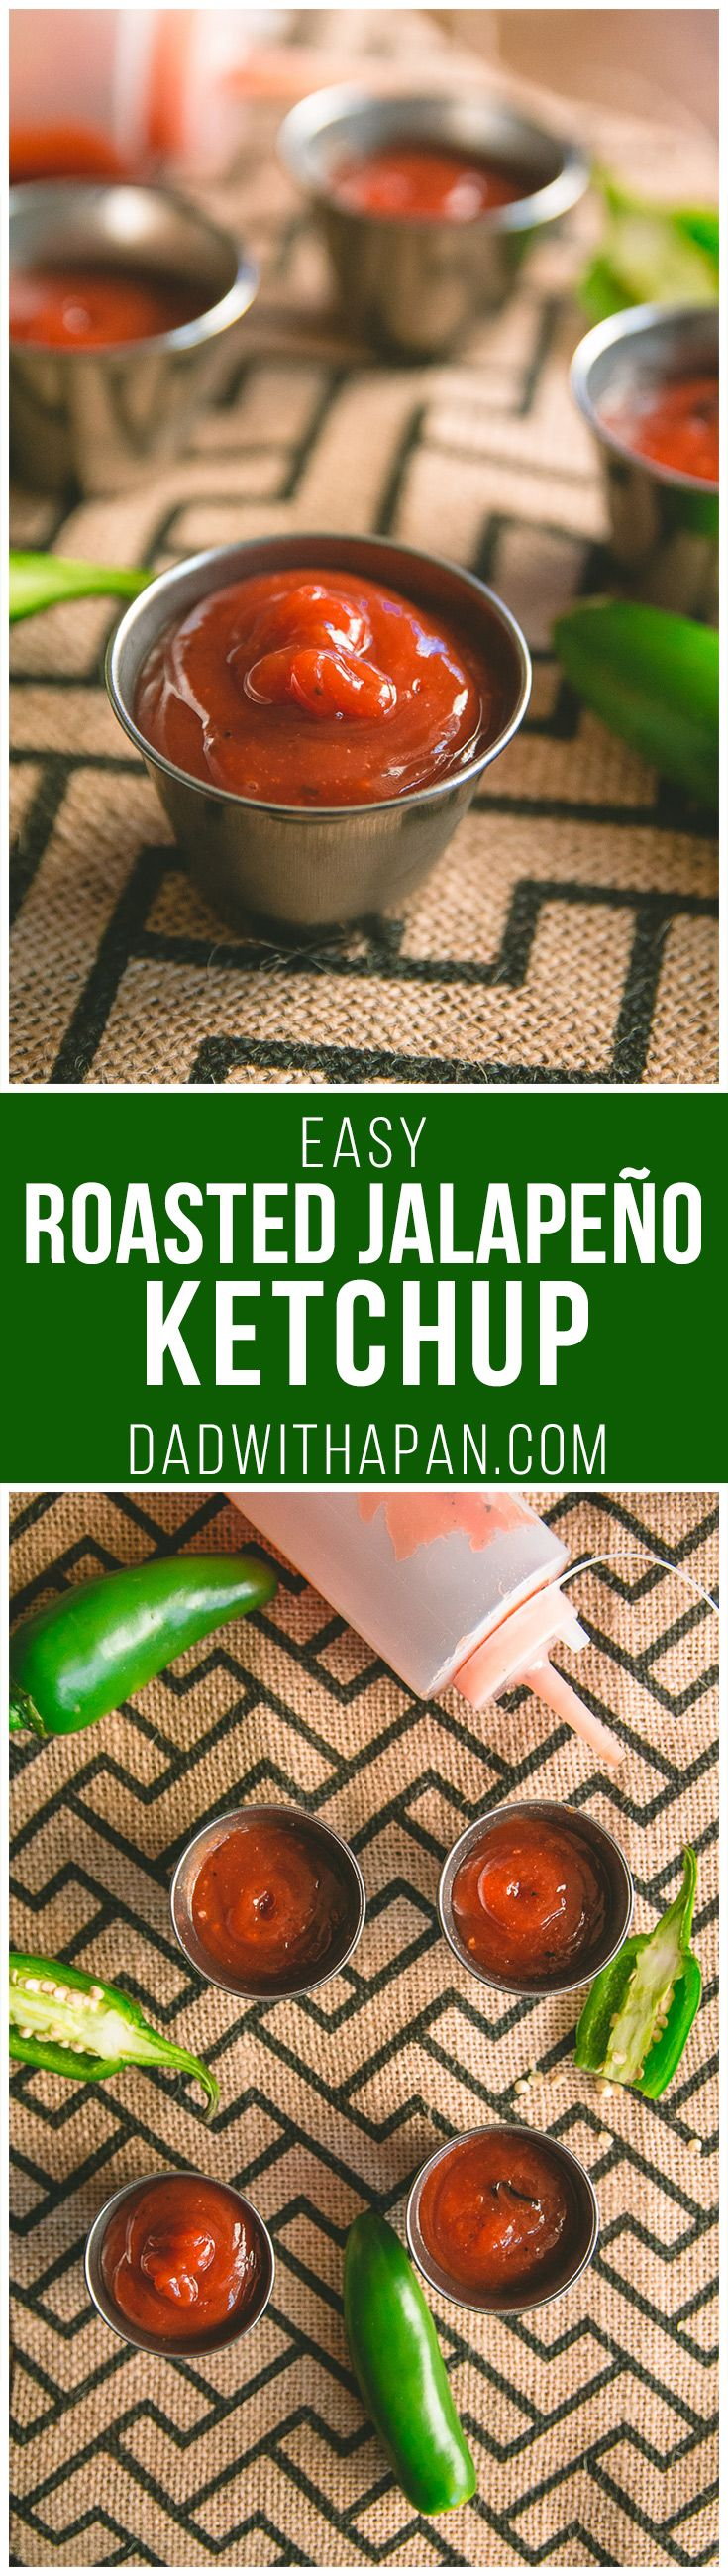 Easy Roasted Jalapeno Ketchup #Spicy #Jalapeno #Ketchup